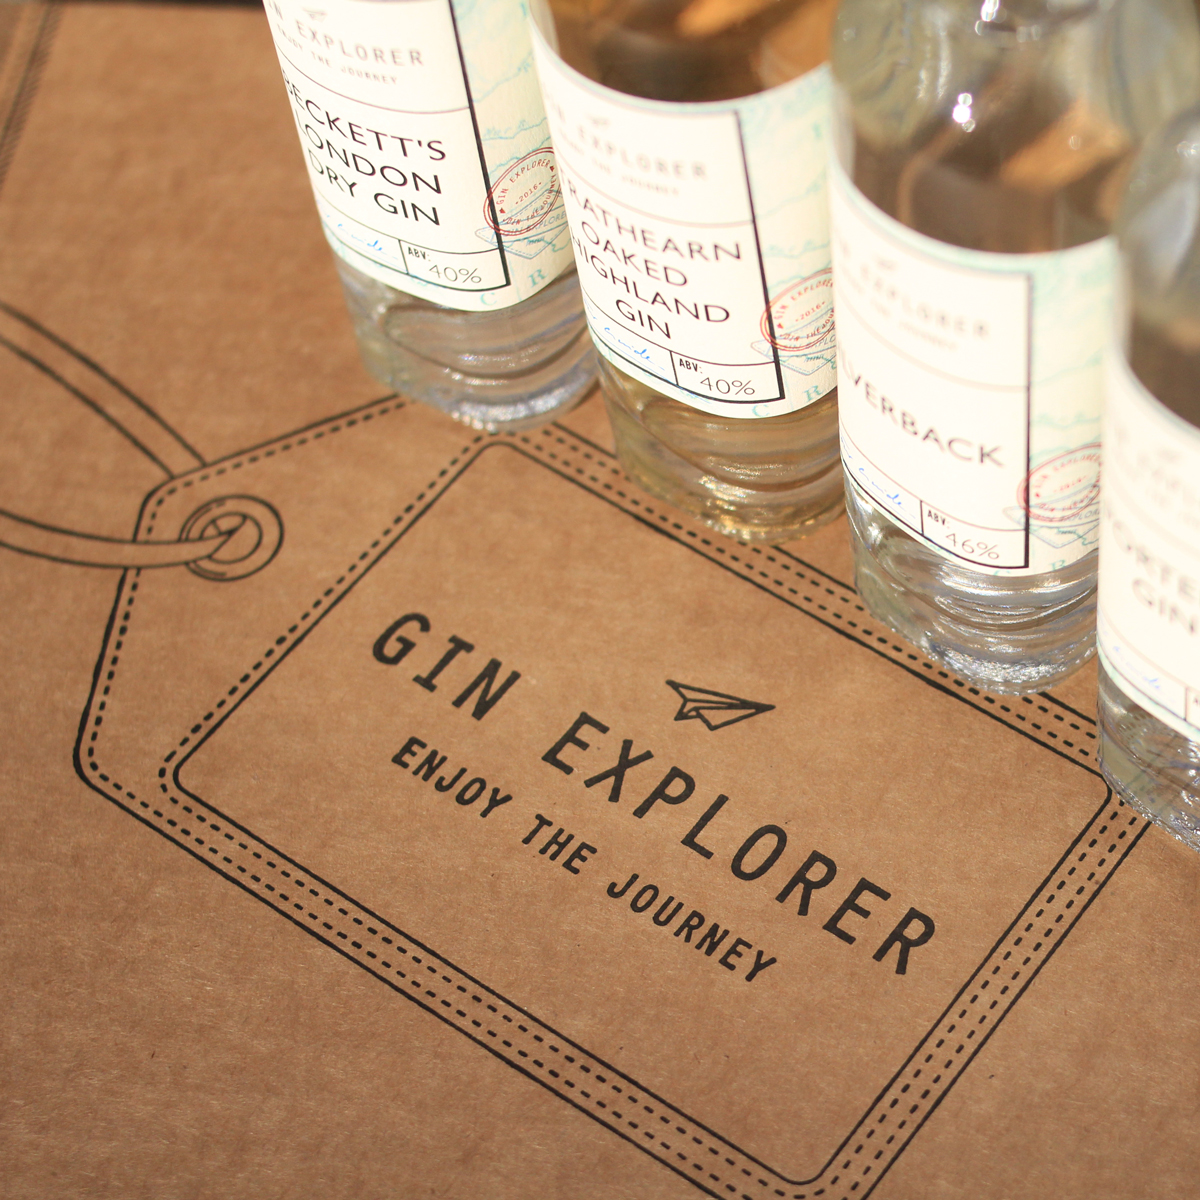 The Best New Gift for Gin Drinkers